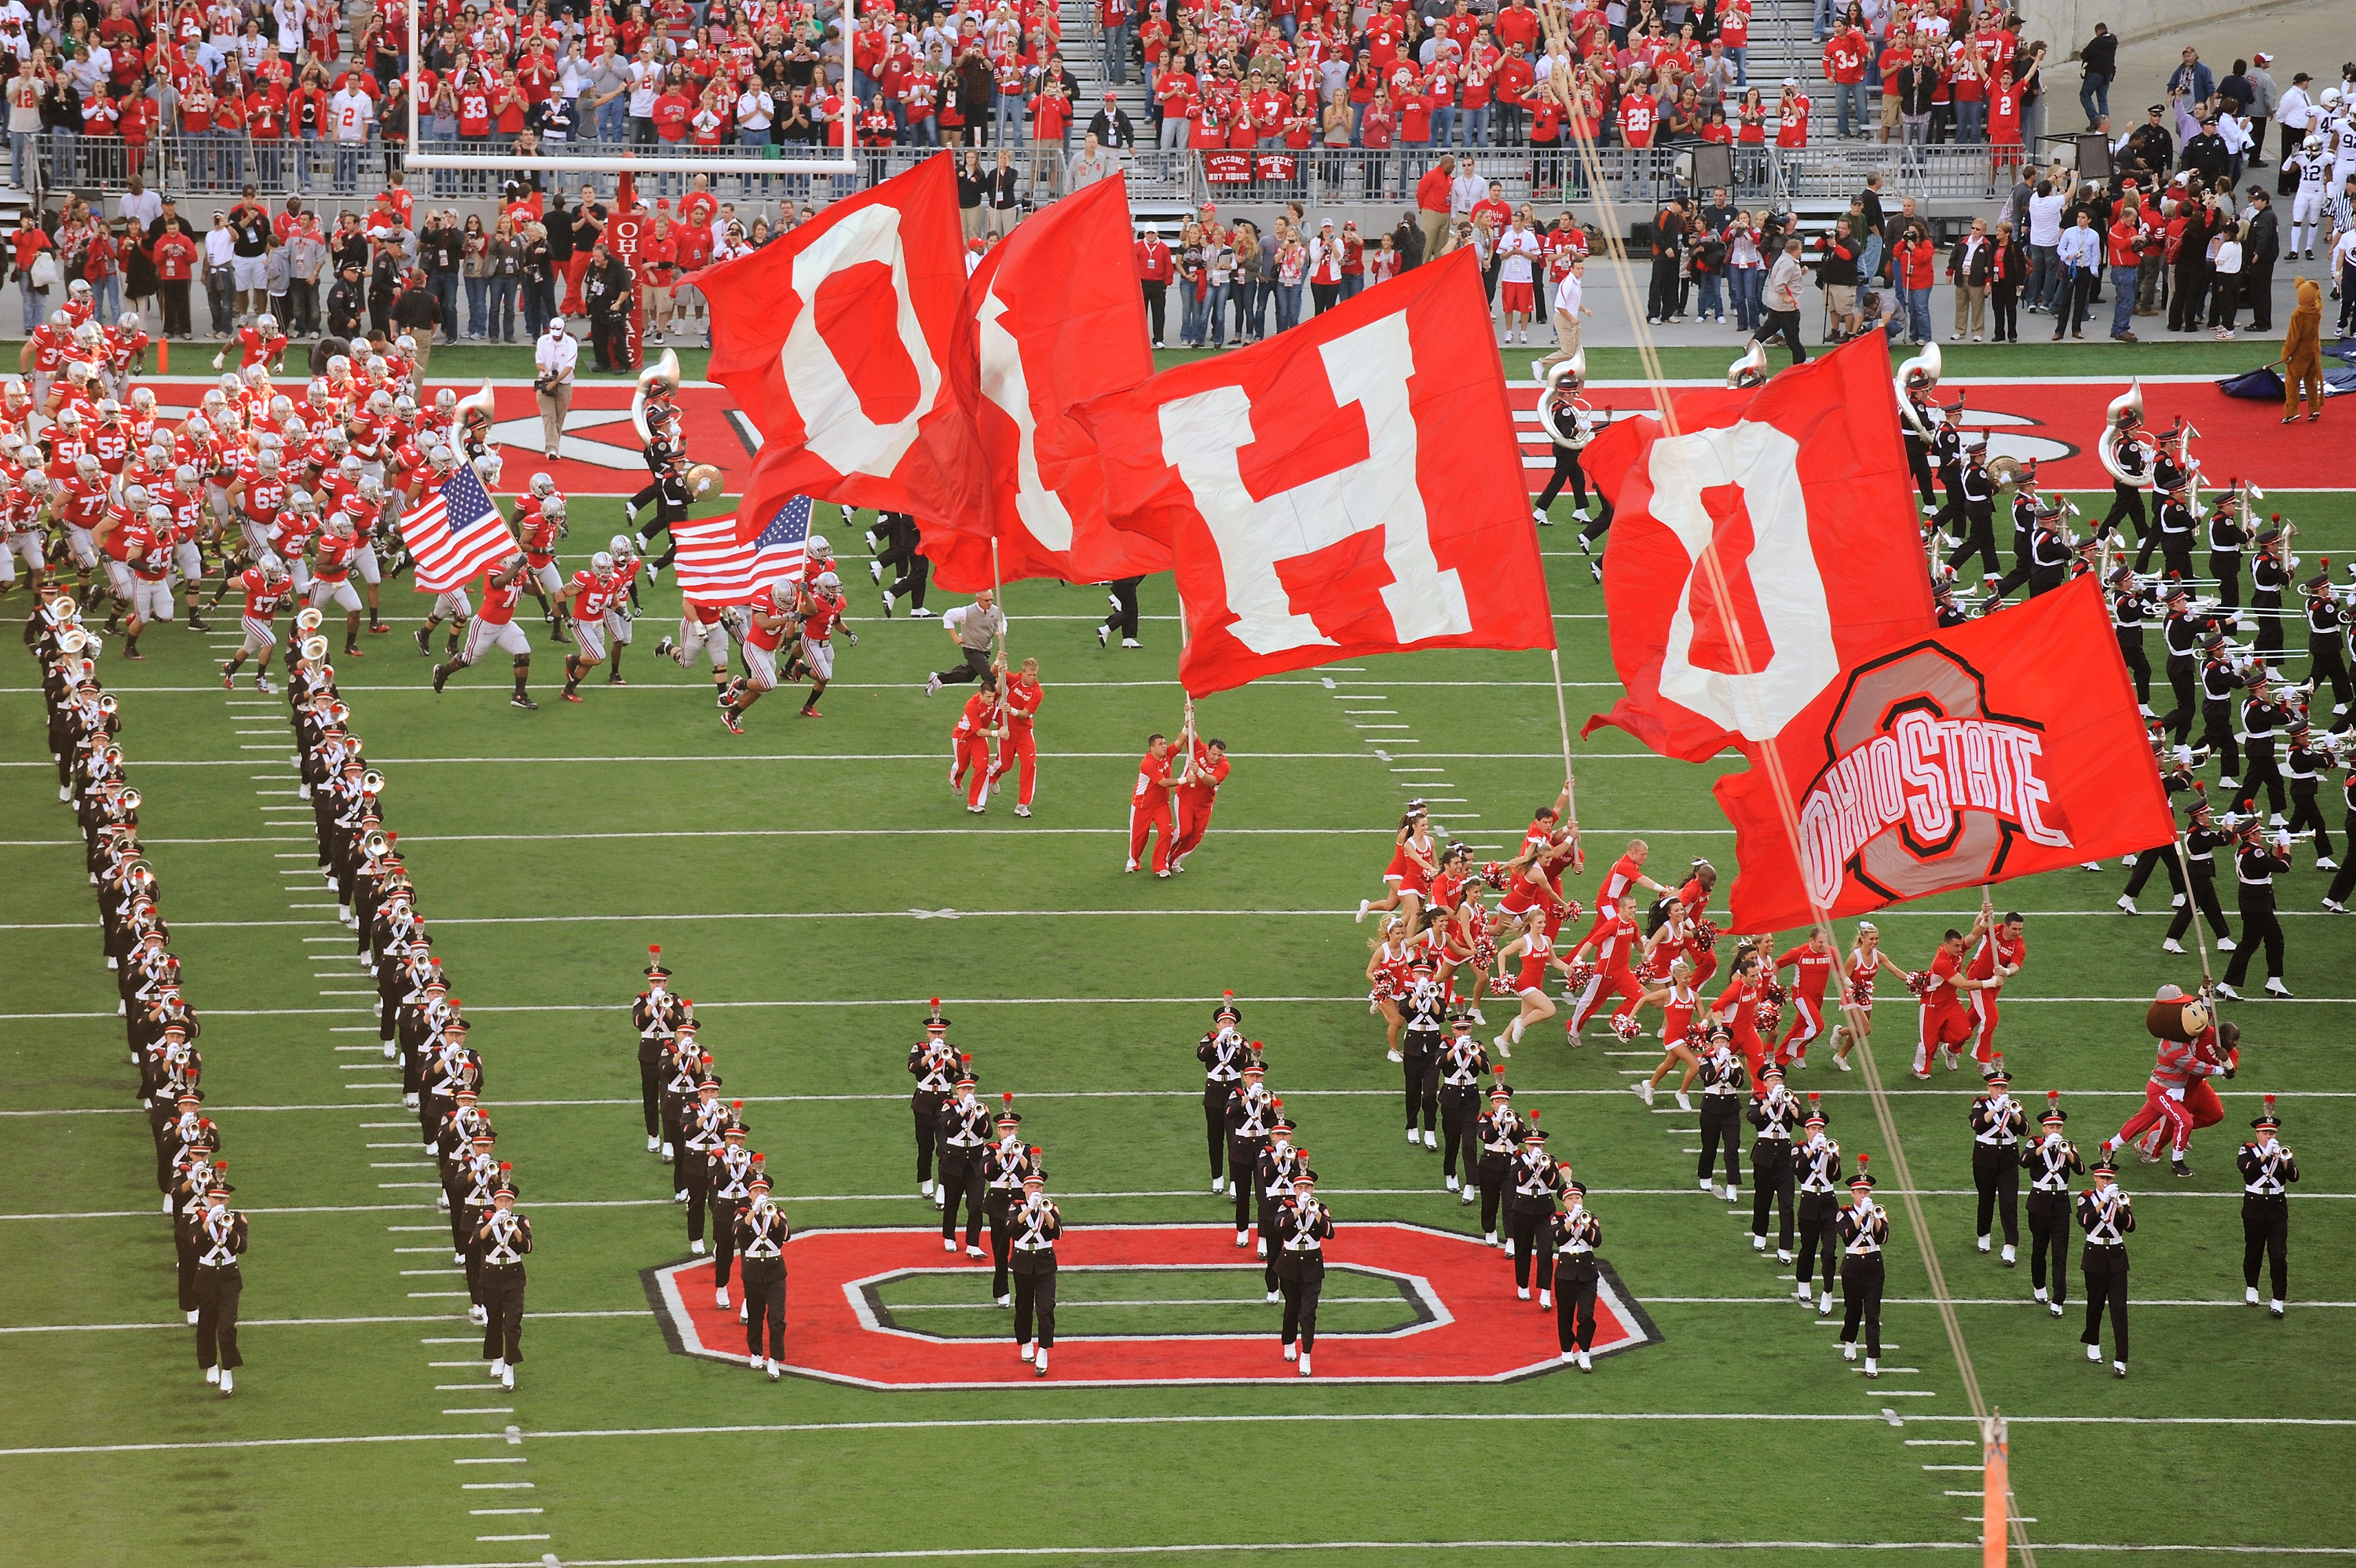 COLUMBUS, OH - NOVEMBER 13:  Bryant Browning #70 of the Ohio State Buckeyes and Cameron Heyward #97 of the Ohio State Buckeyes carry American flags to lead the Buckeyes on to the field before a game against the Penn State Nittany Lions at Ohio Stadium on